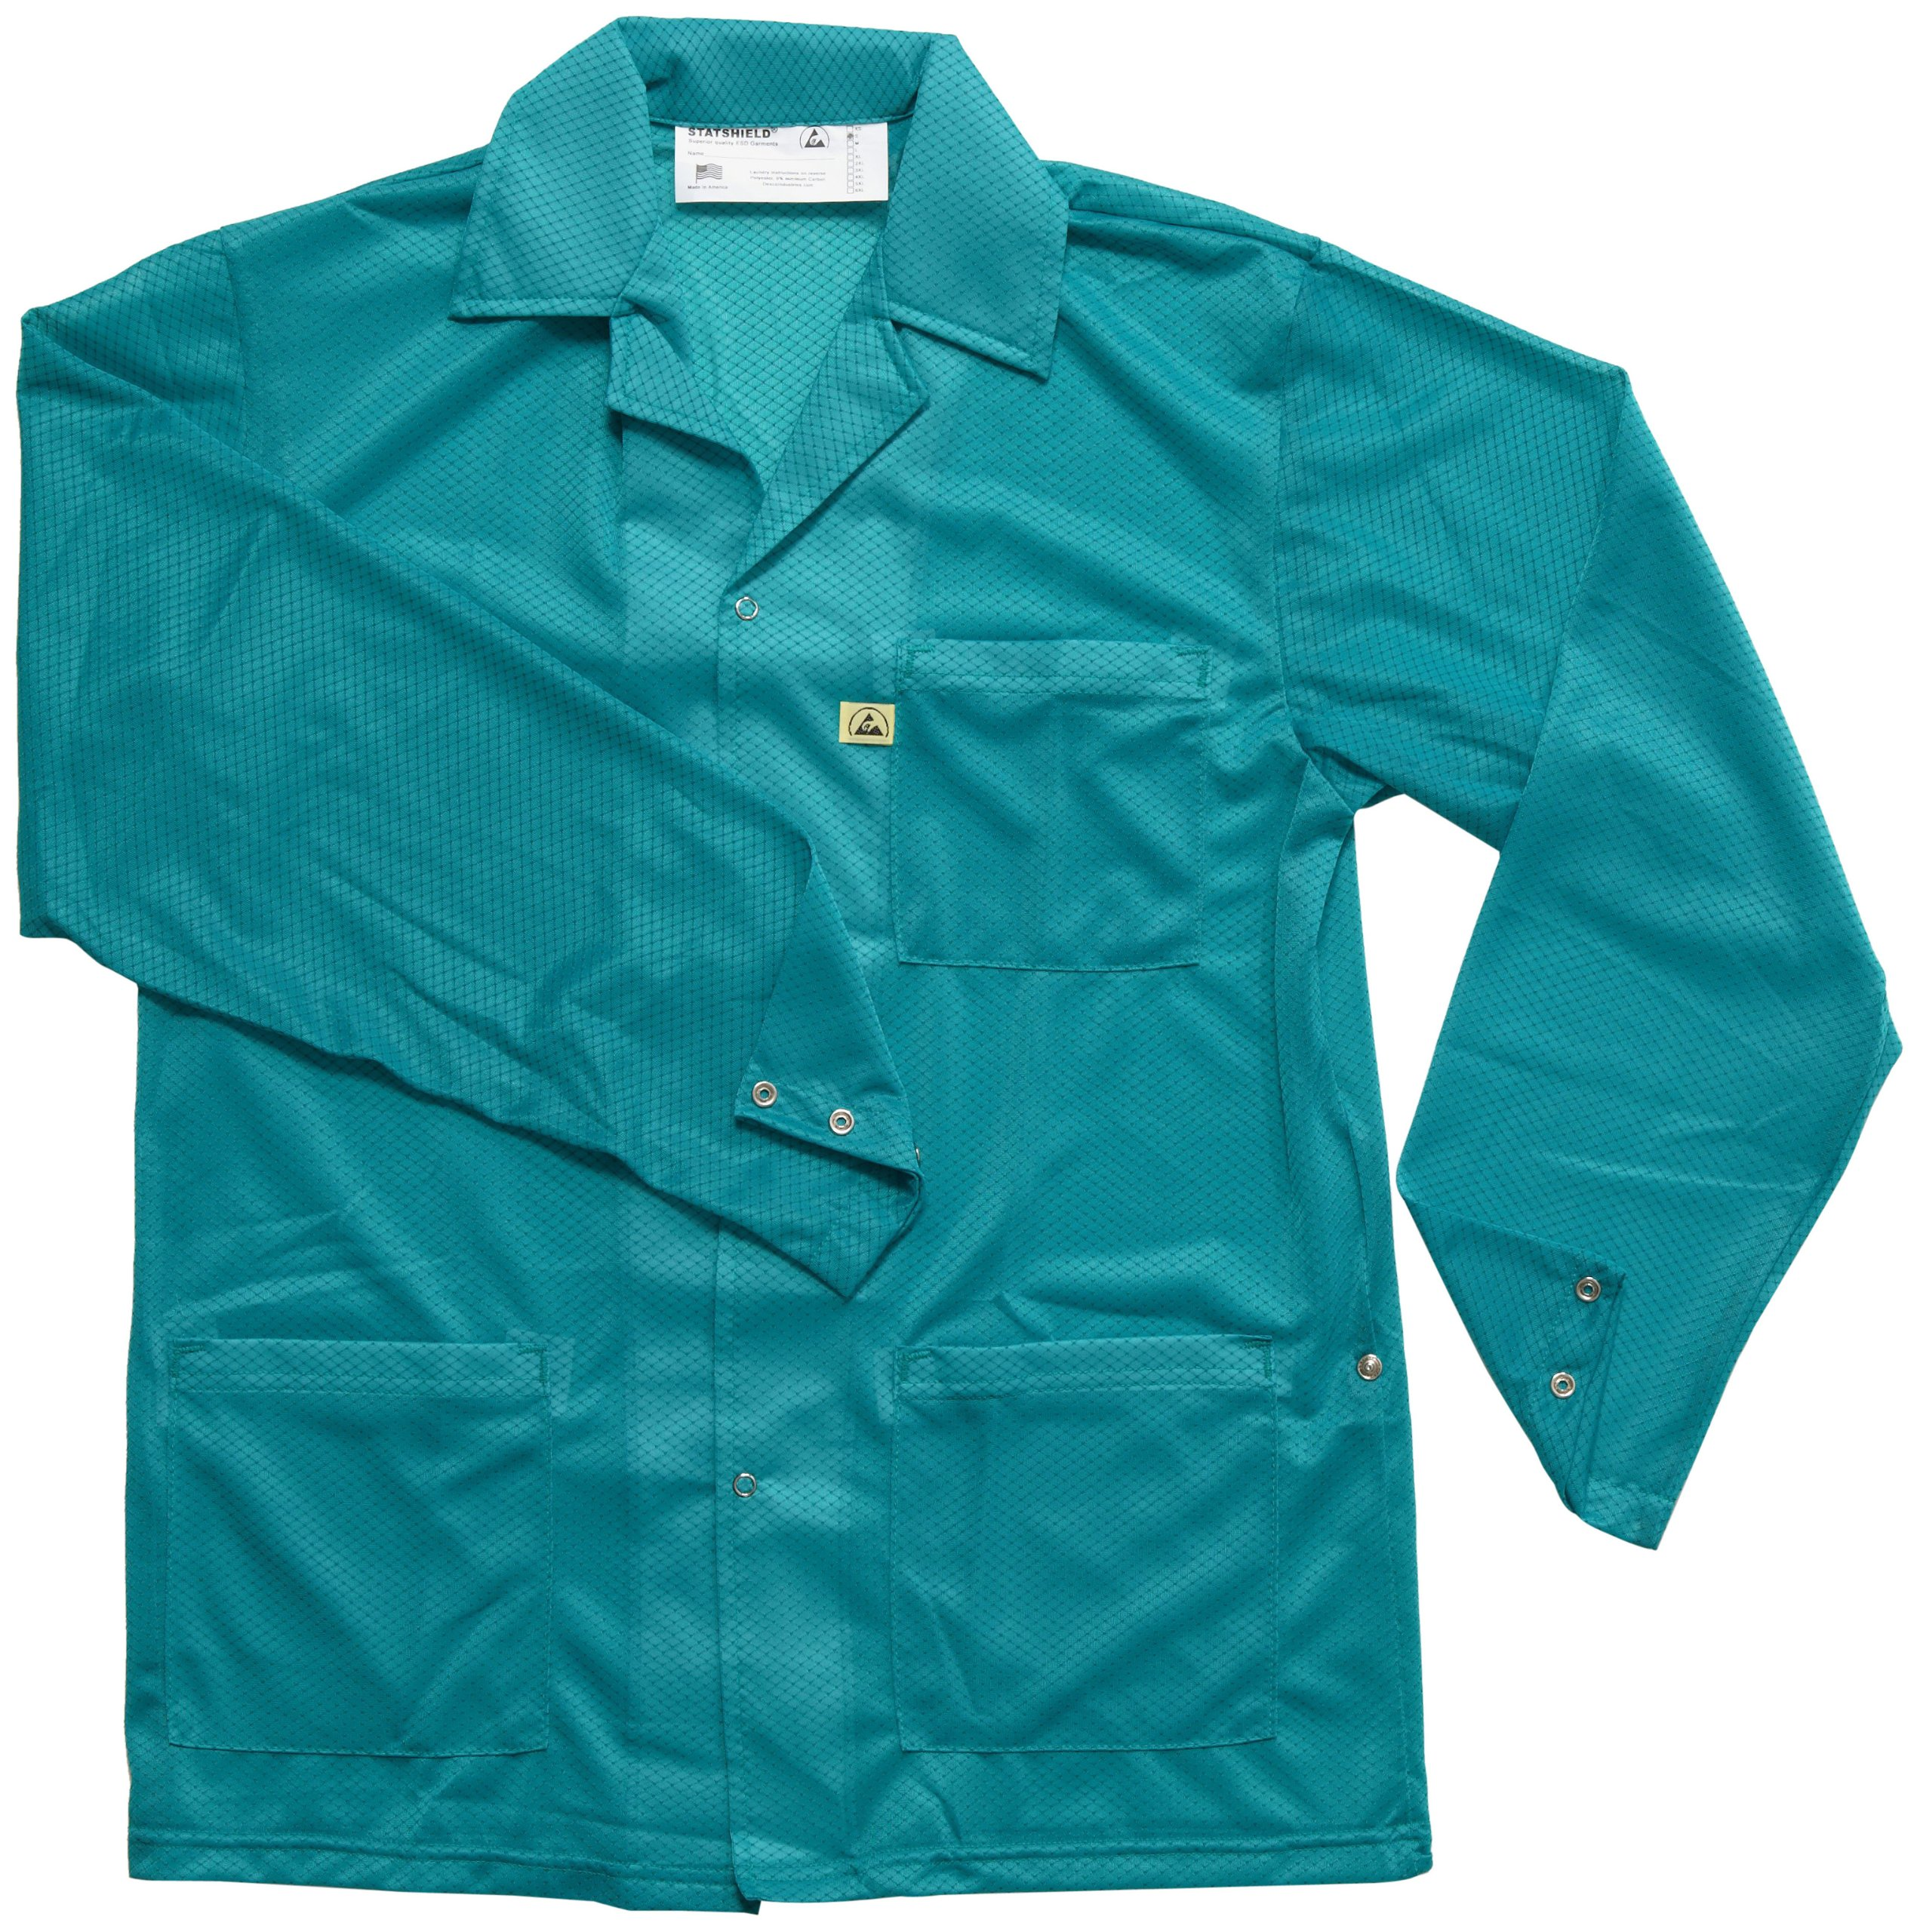 DESCO 73844 Polyester Smock Statshield Jacket with Snaps, 31'' Length, X-Large, Teal